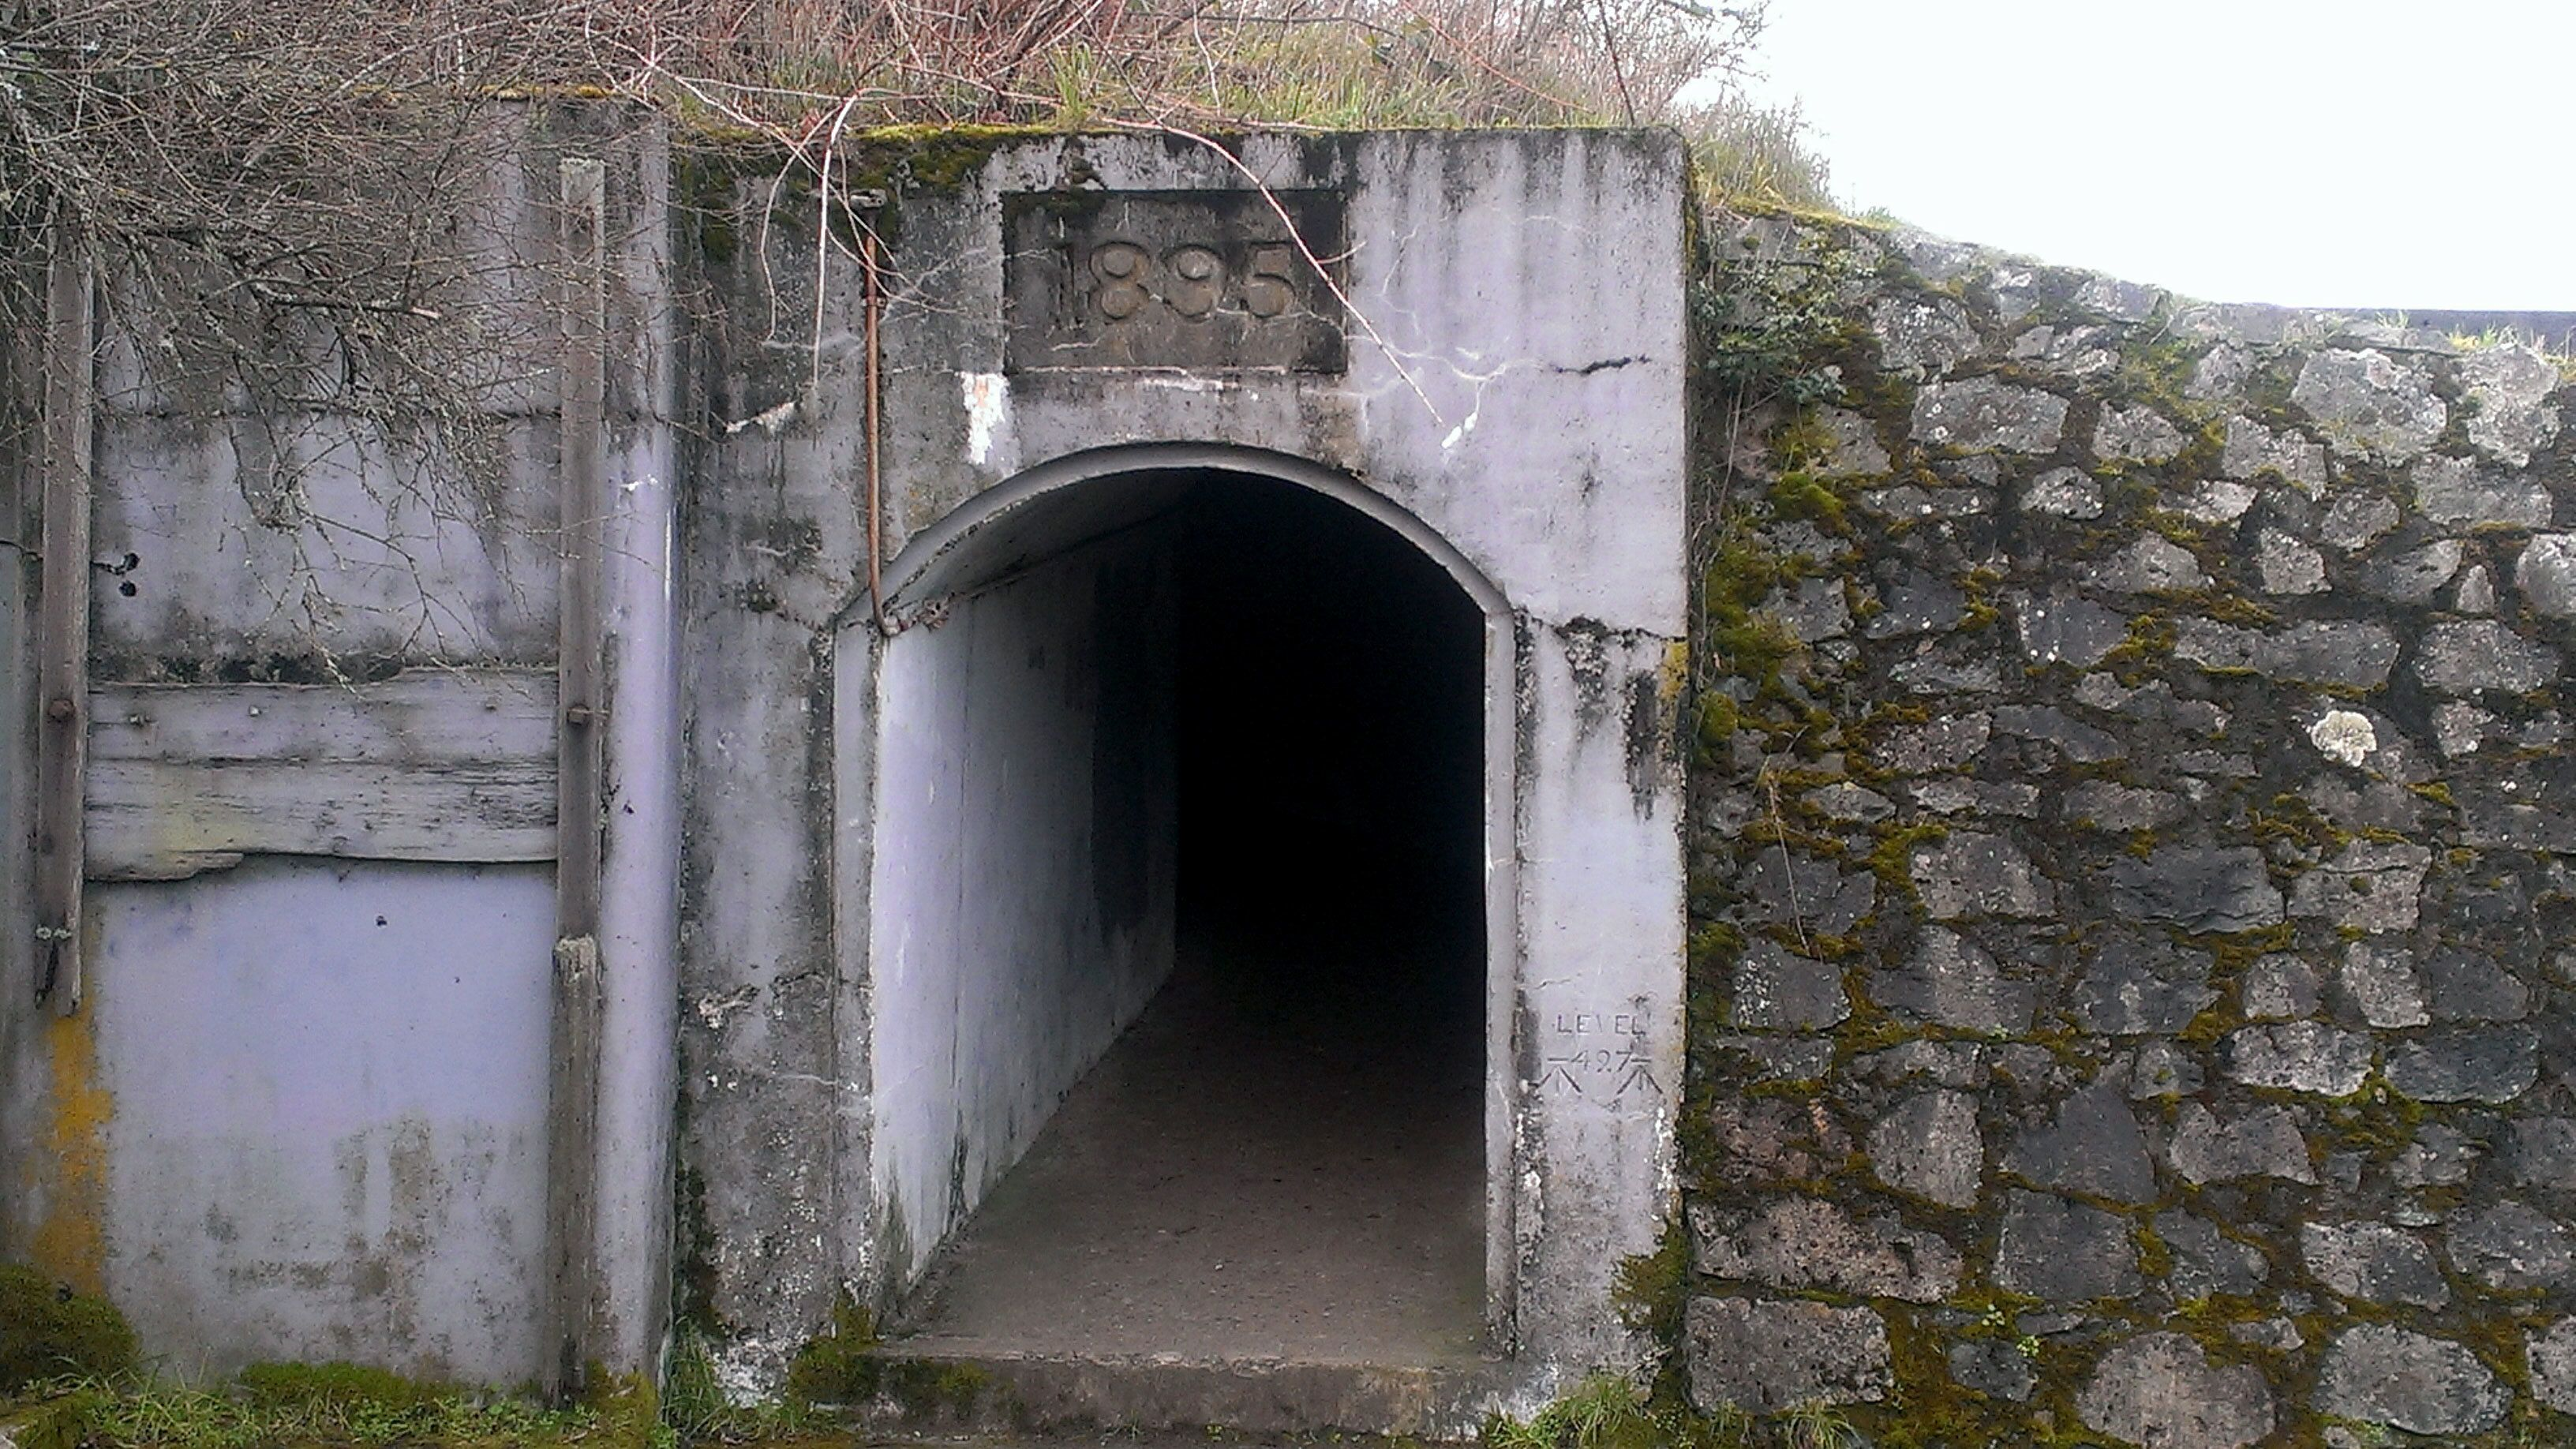 Entrance to a tunnel at Macaulay Point Park on Vancouver Island